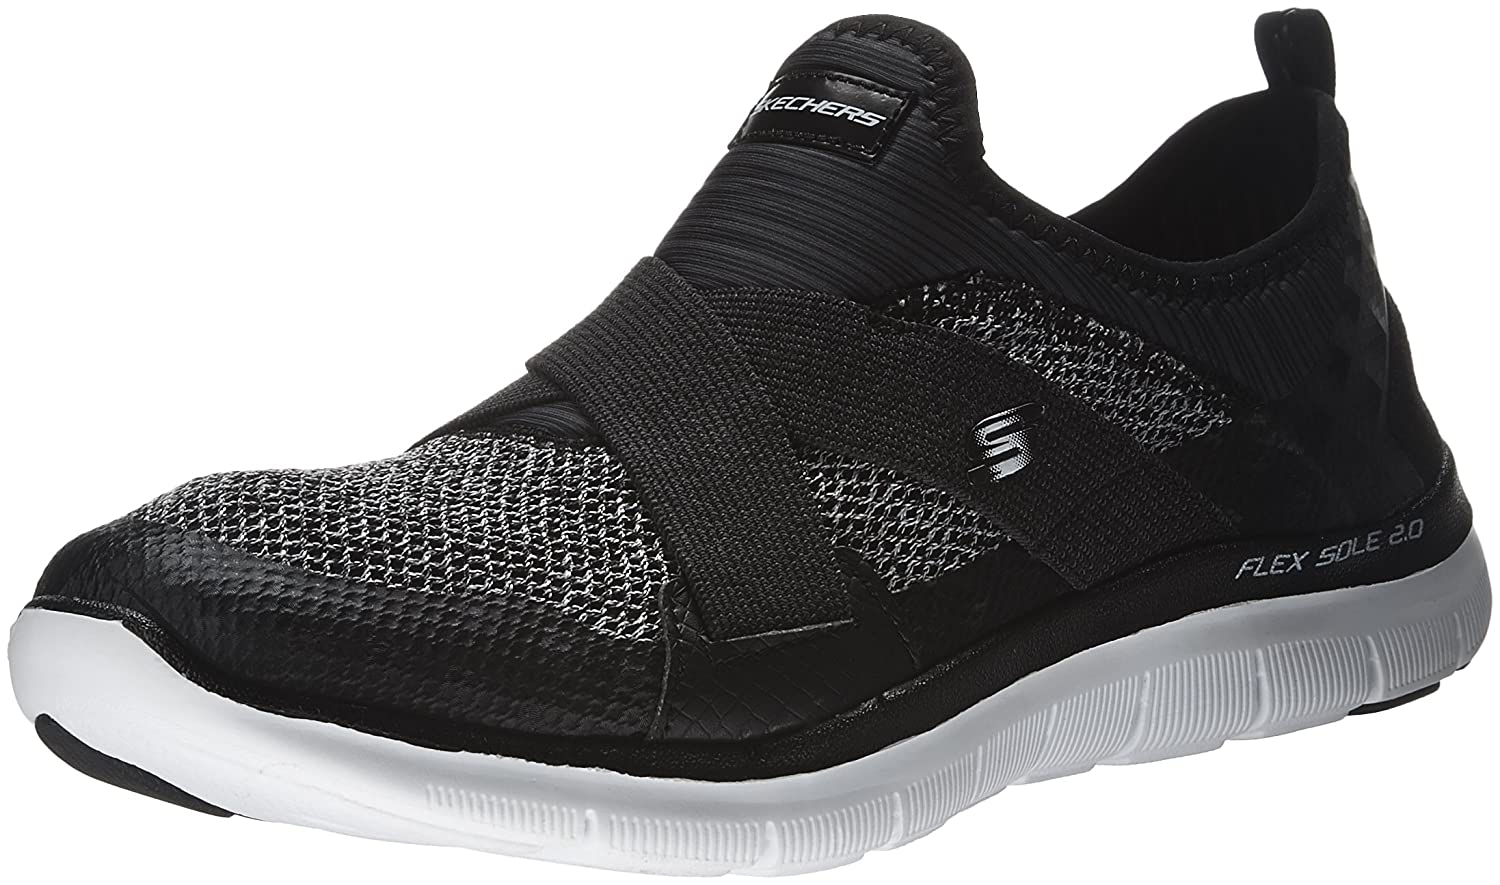 Skechers Sneaker Sport Women's Flex Appeal 2.0 New Image Fashion Sneaker Skechers B01EORZMG6 7 B(M) US|Black/White 7e7c19